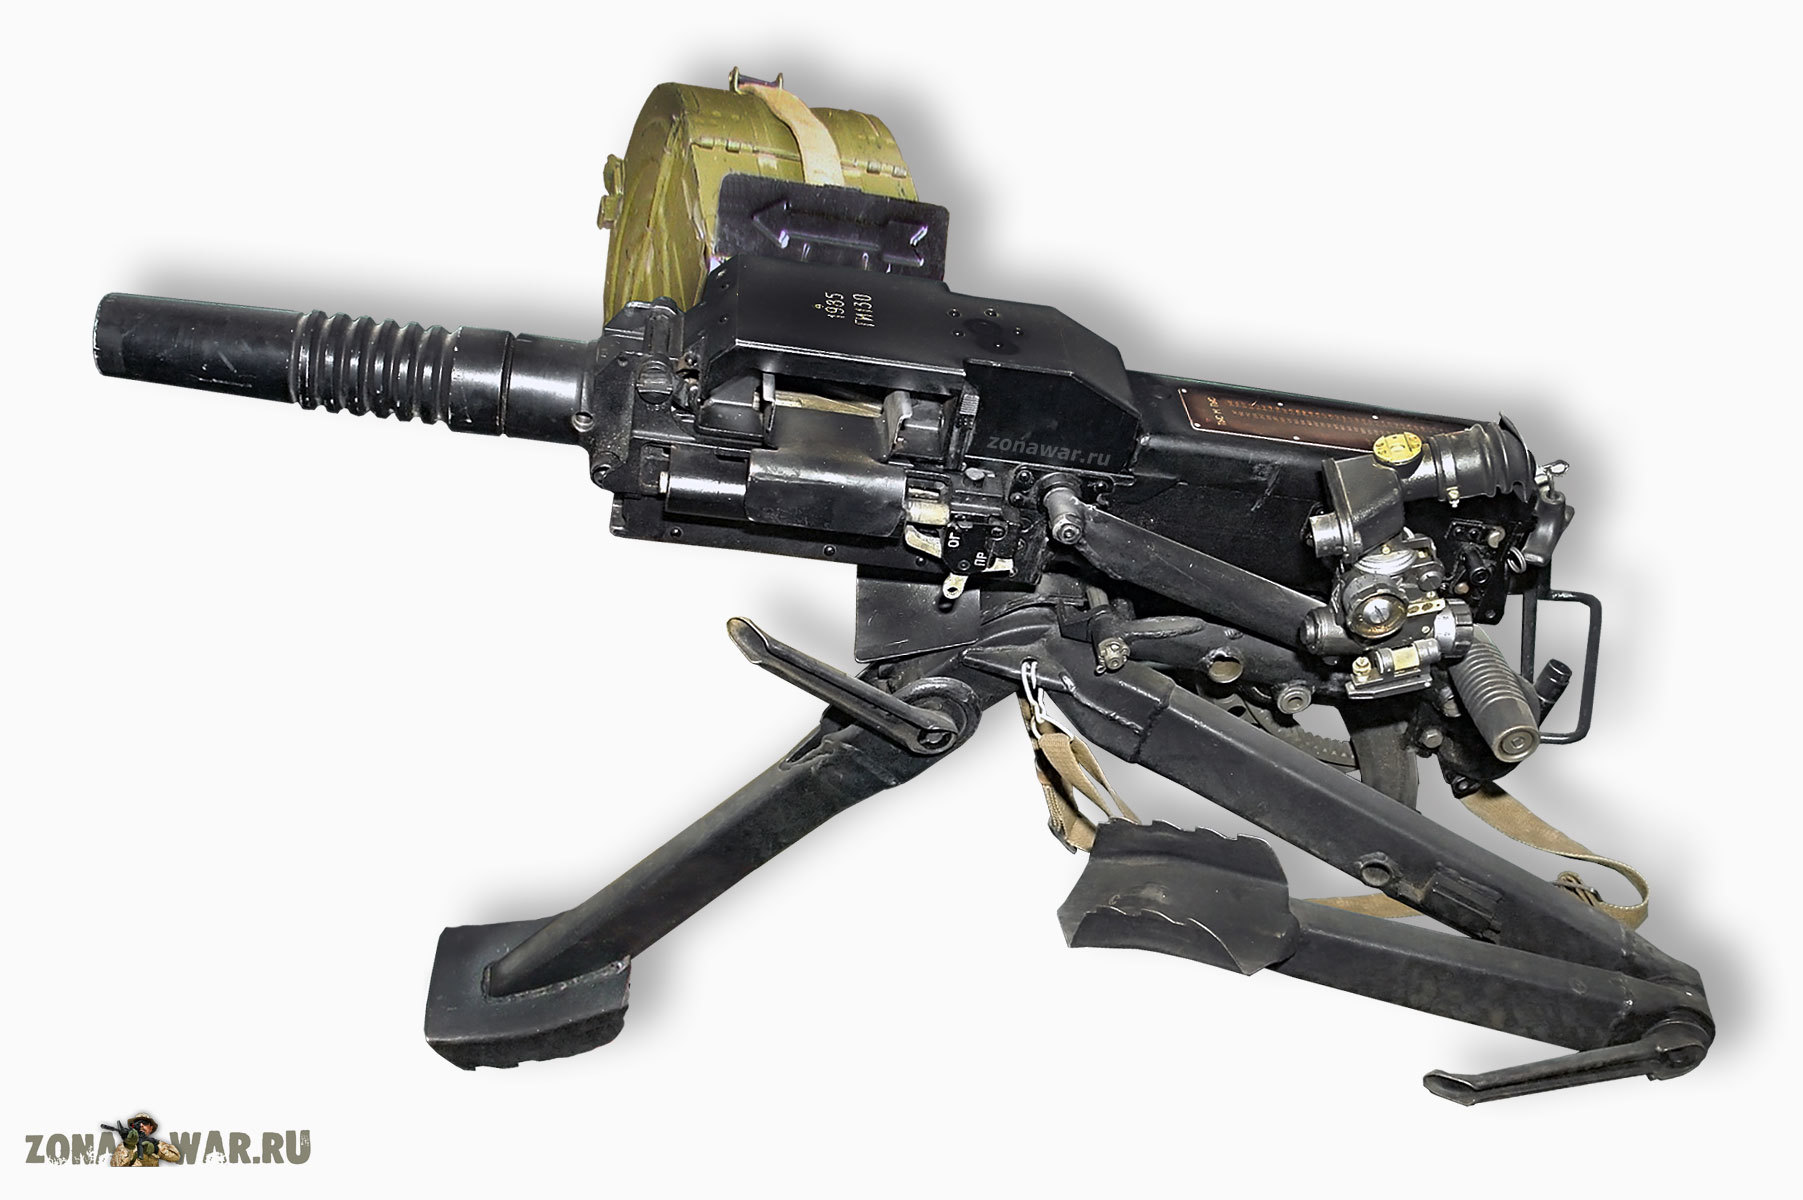 AGS-17: technical specifications. Grenade Launcher AGS-17 Flame 21